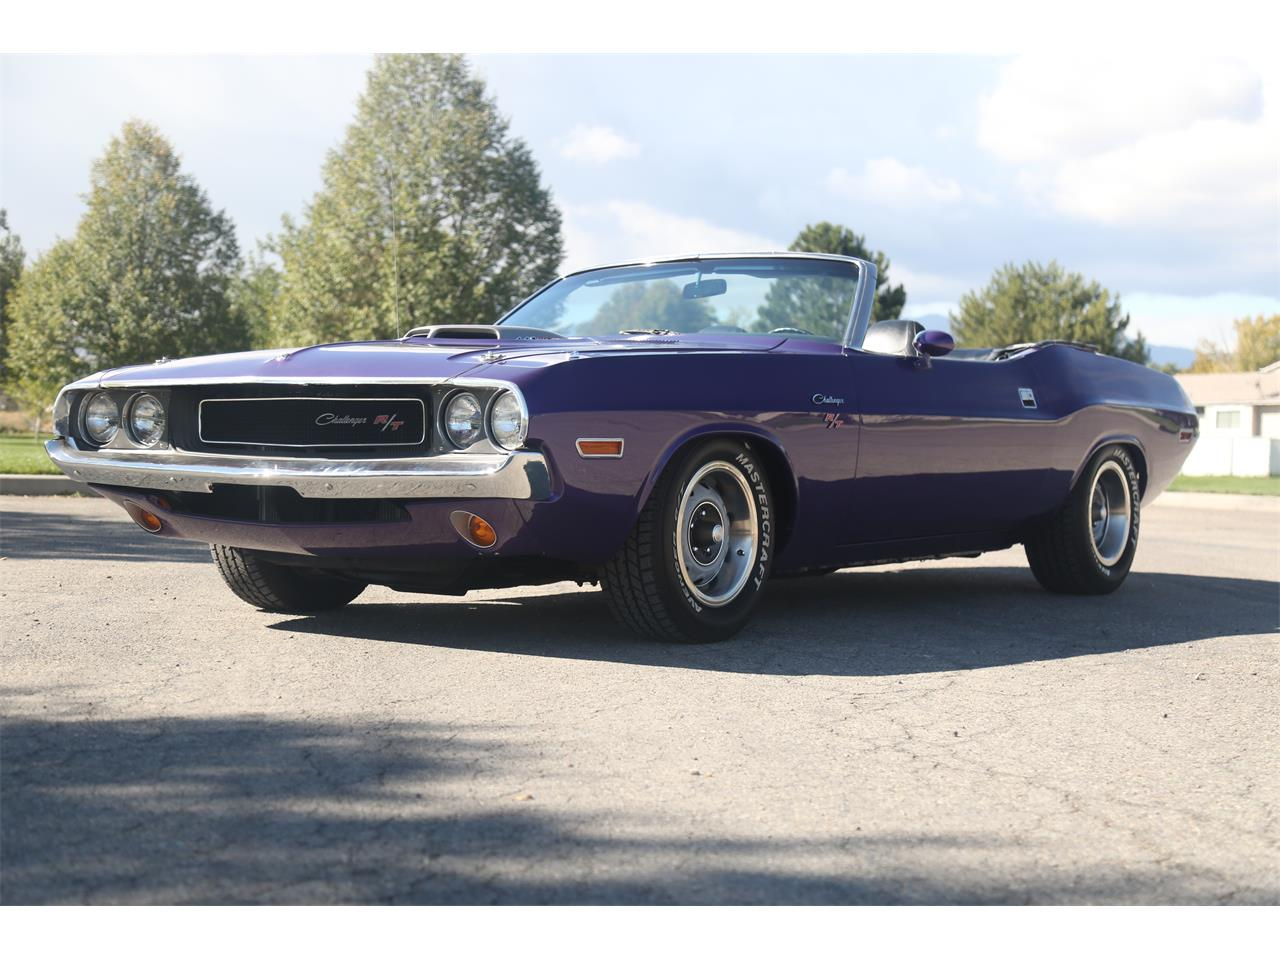 Large Picture of Classic '70 Dodge Challenger located in West Valley City Utah - $89,000.00 - M9RV